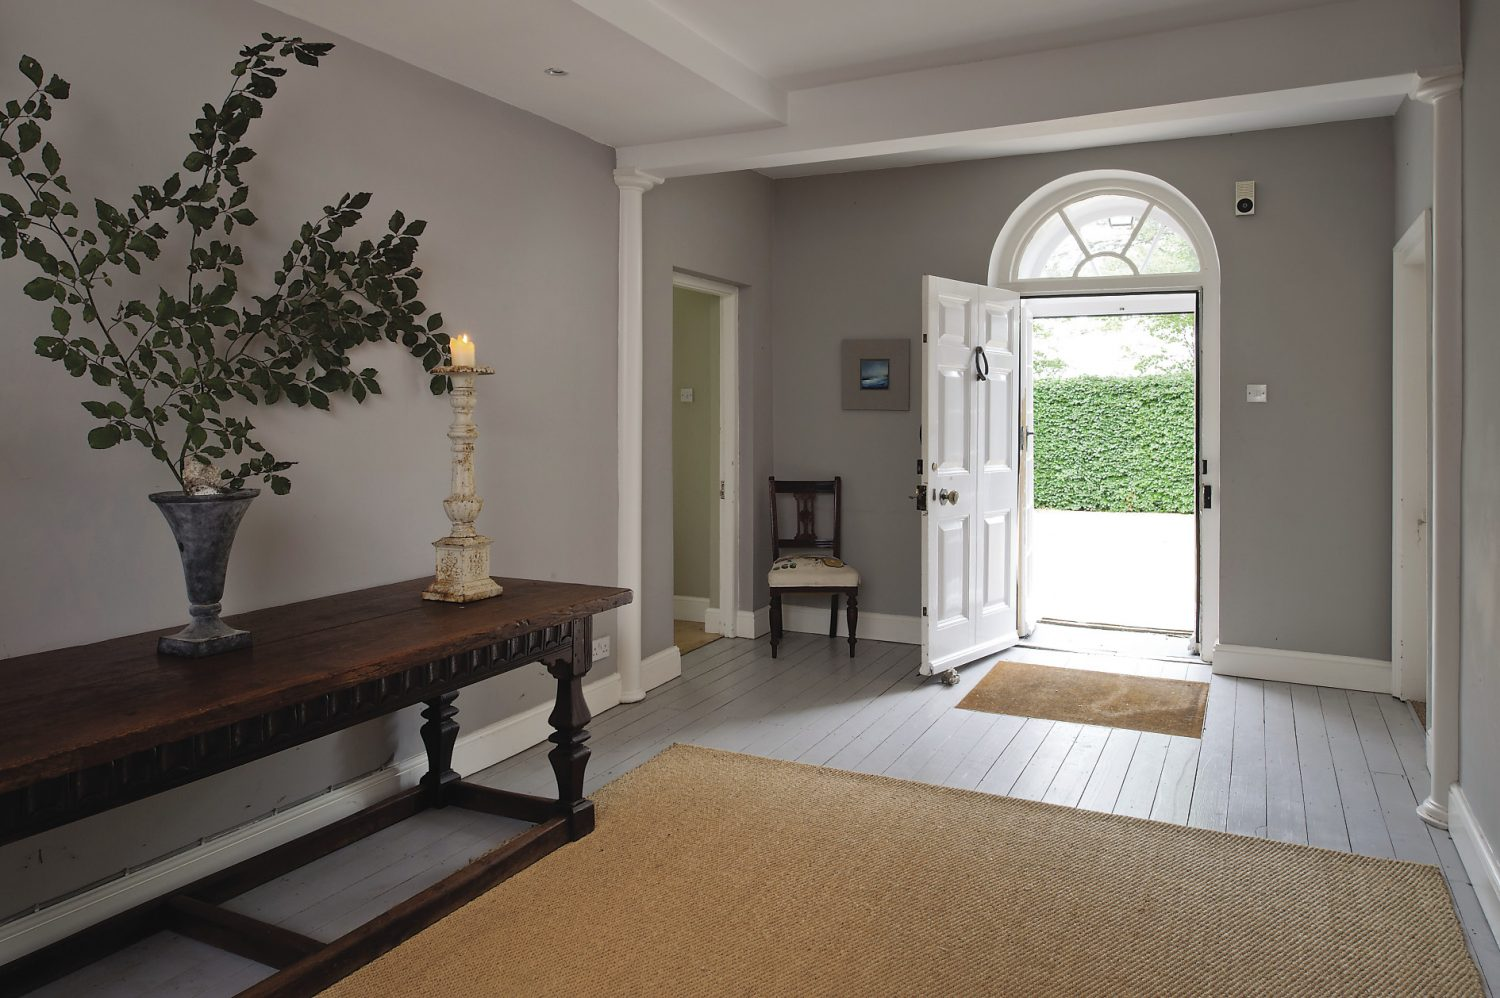 The generously proportioned entrance hall leads through into the kitchen